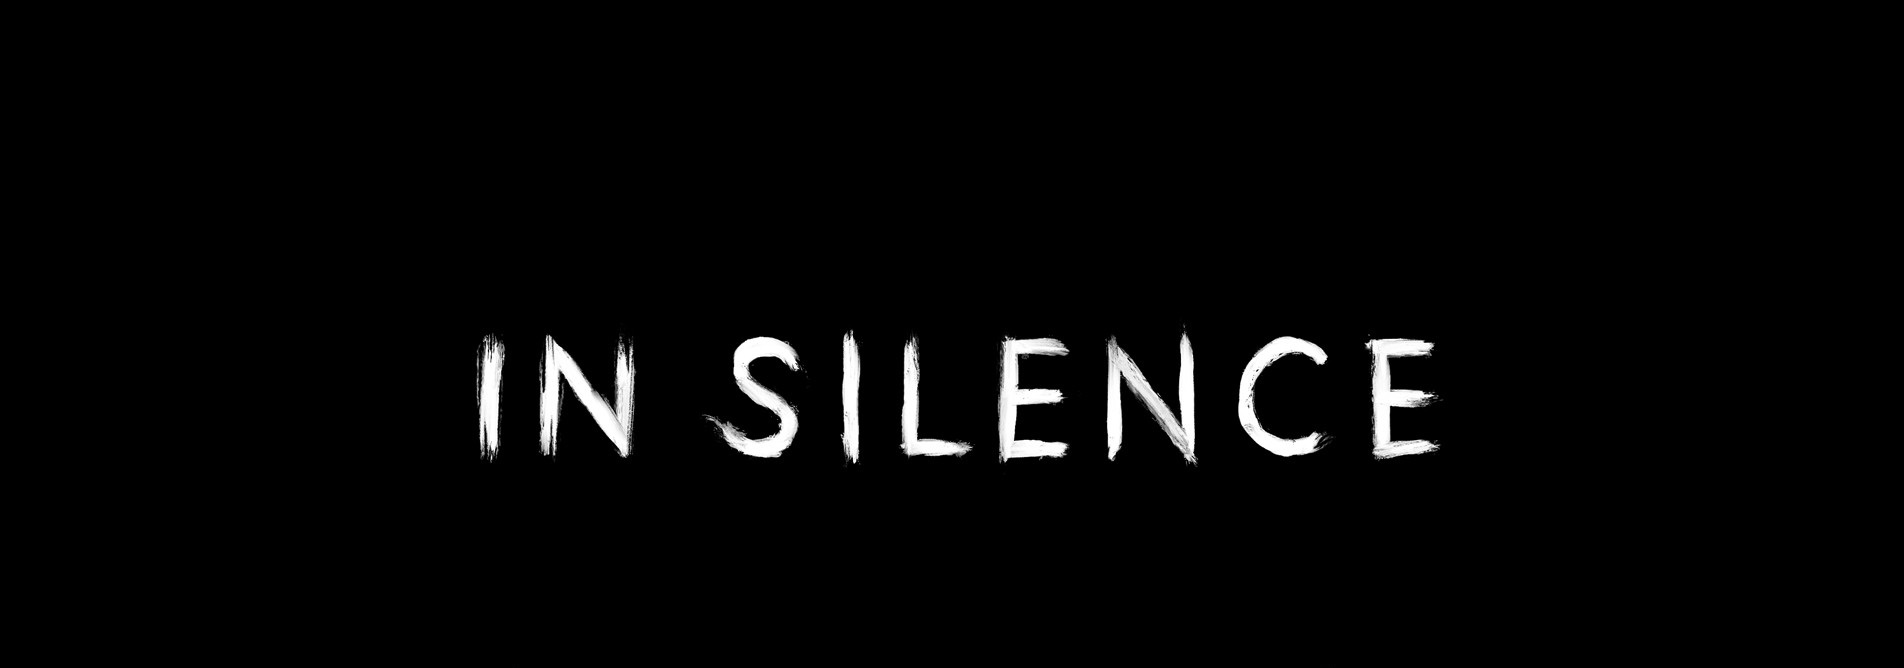 In silence une